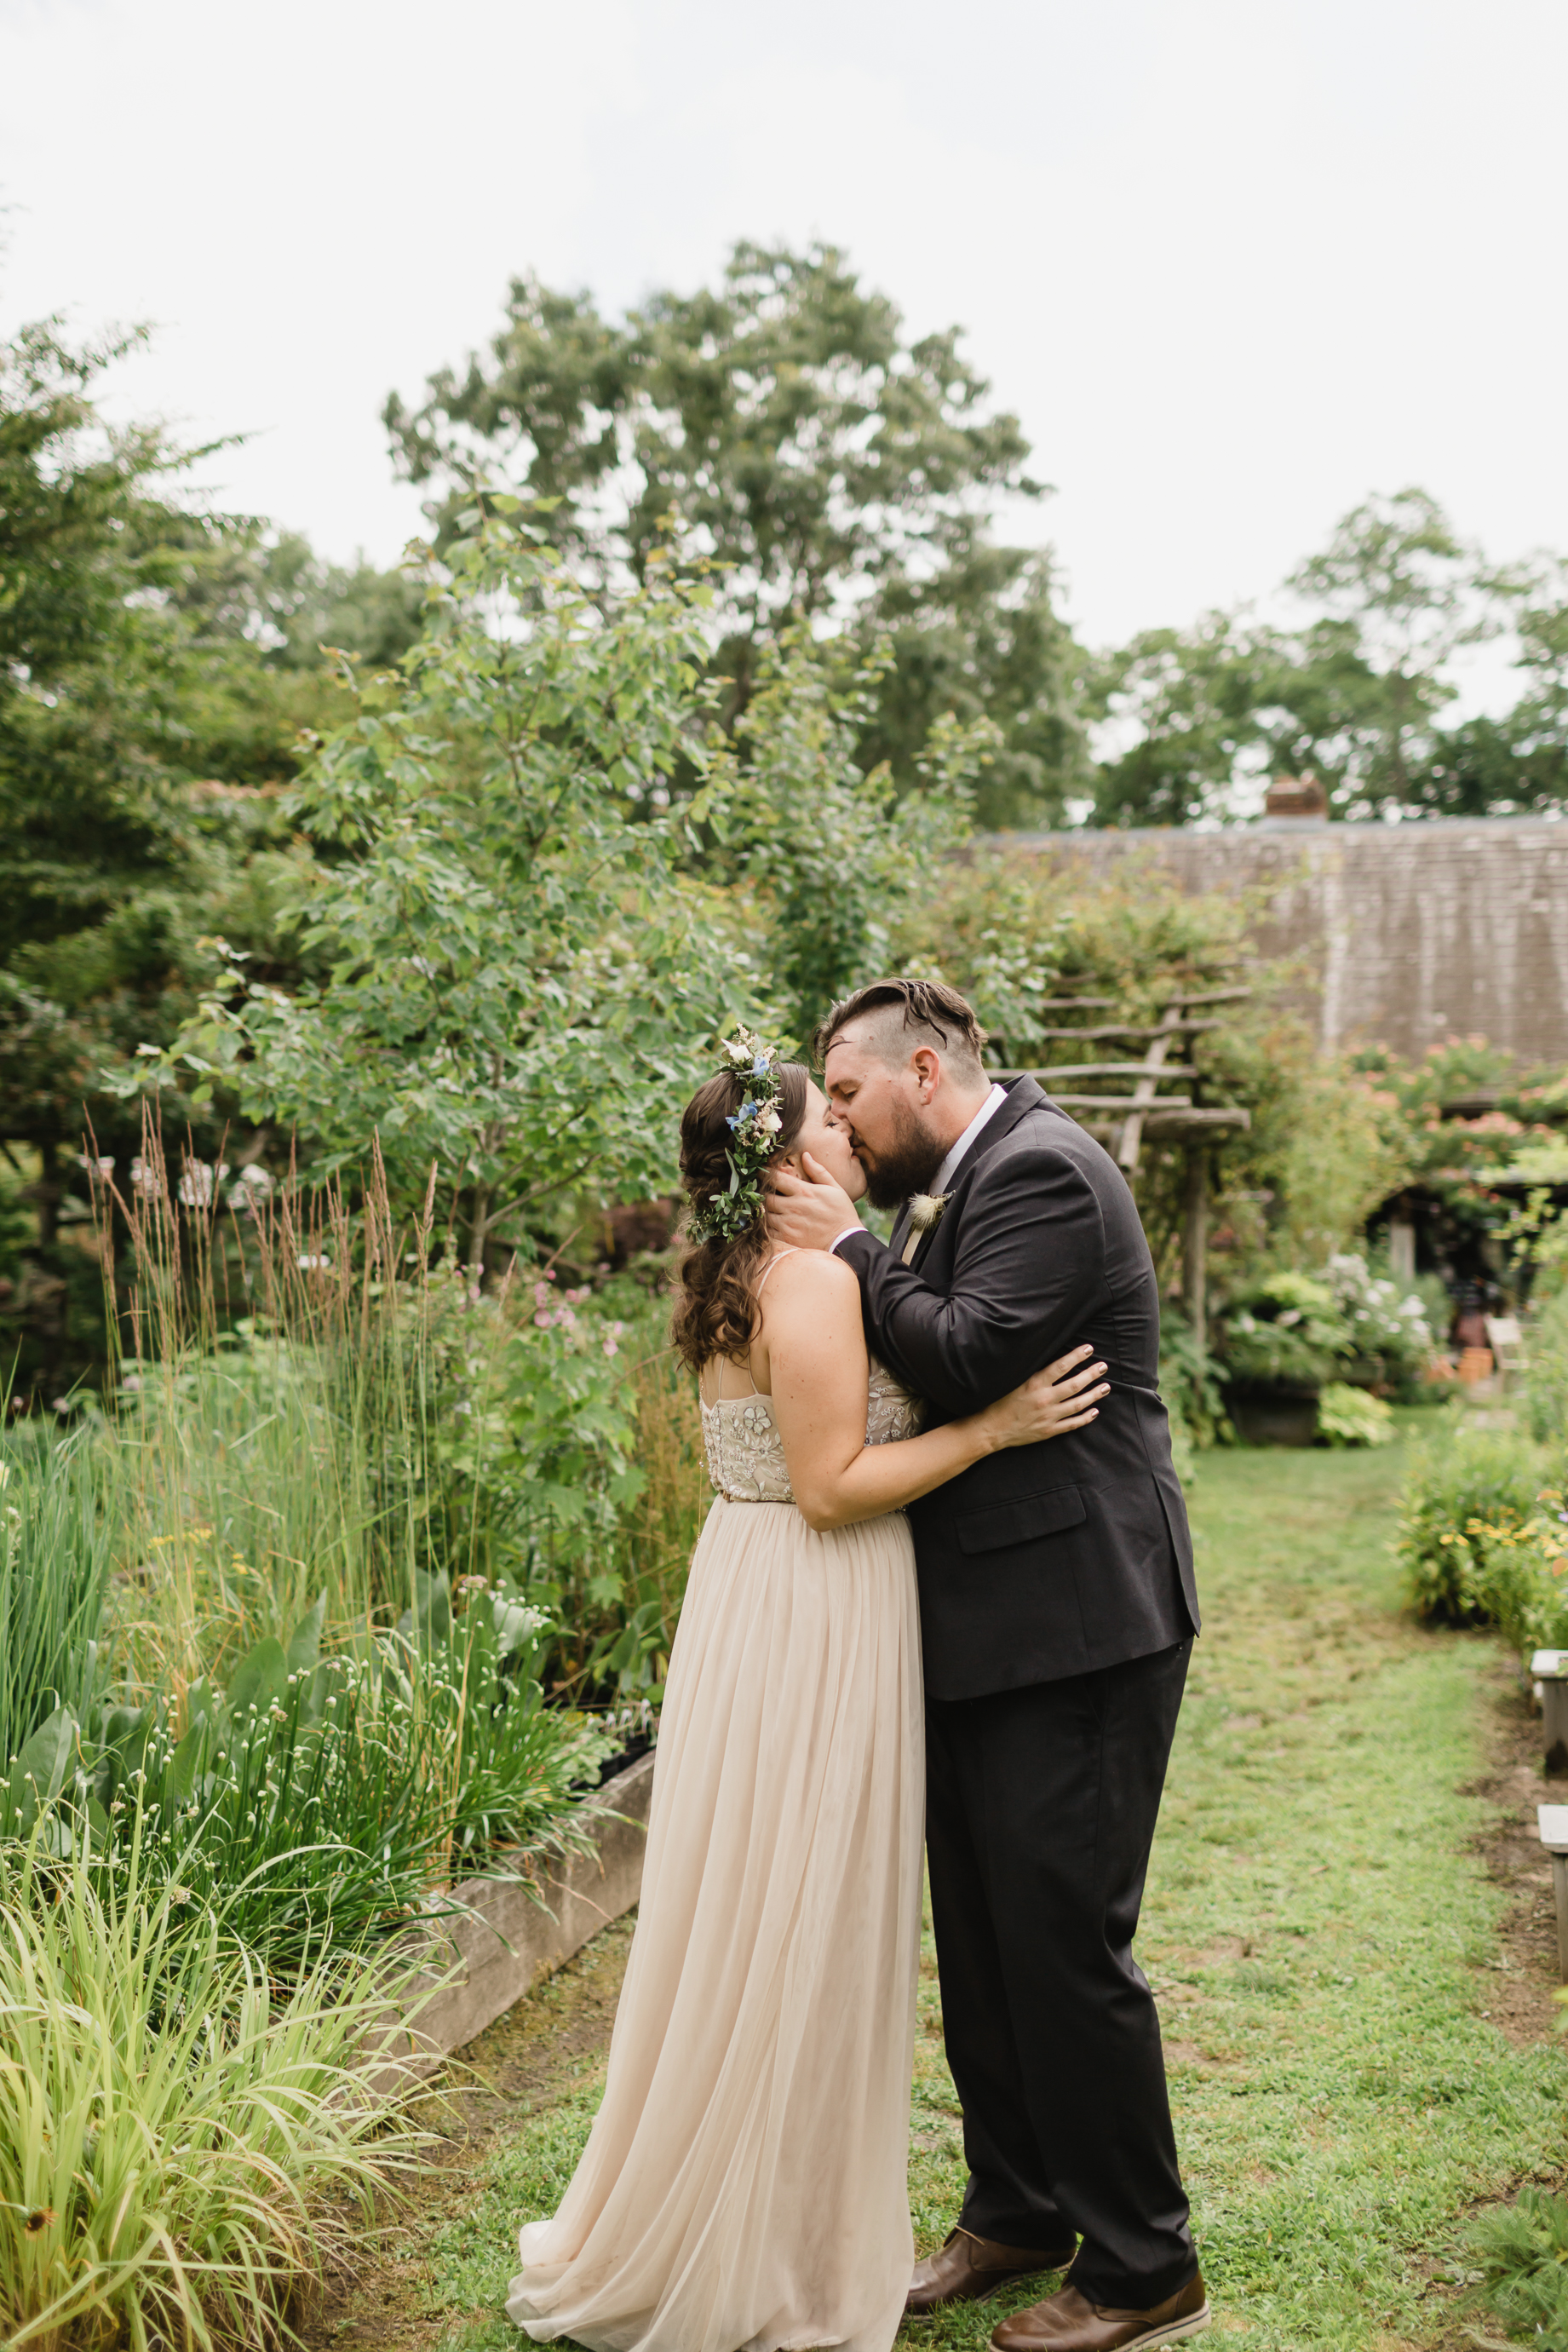 Gianna Keiko Atlanta NYC California Wedding Photographer_Sneak Peek-32.jpg